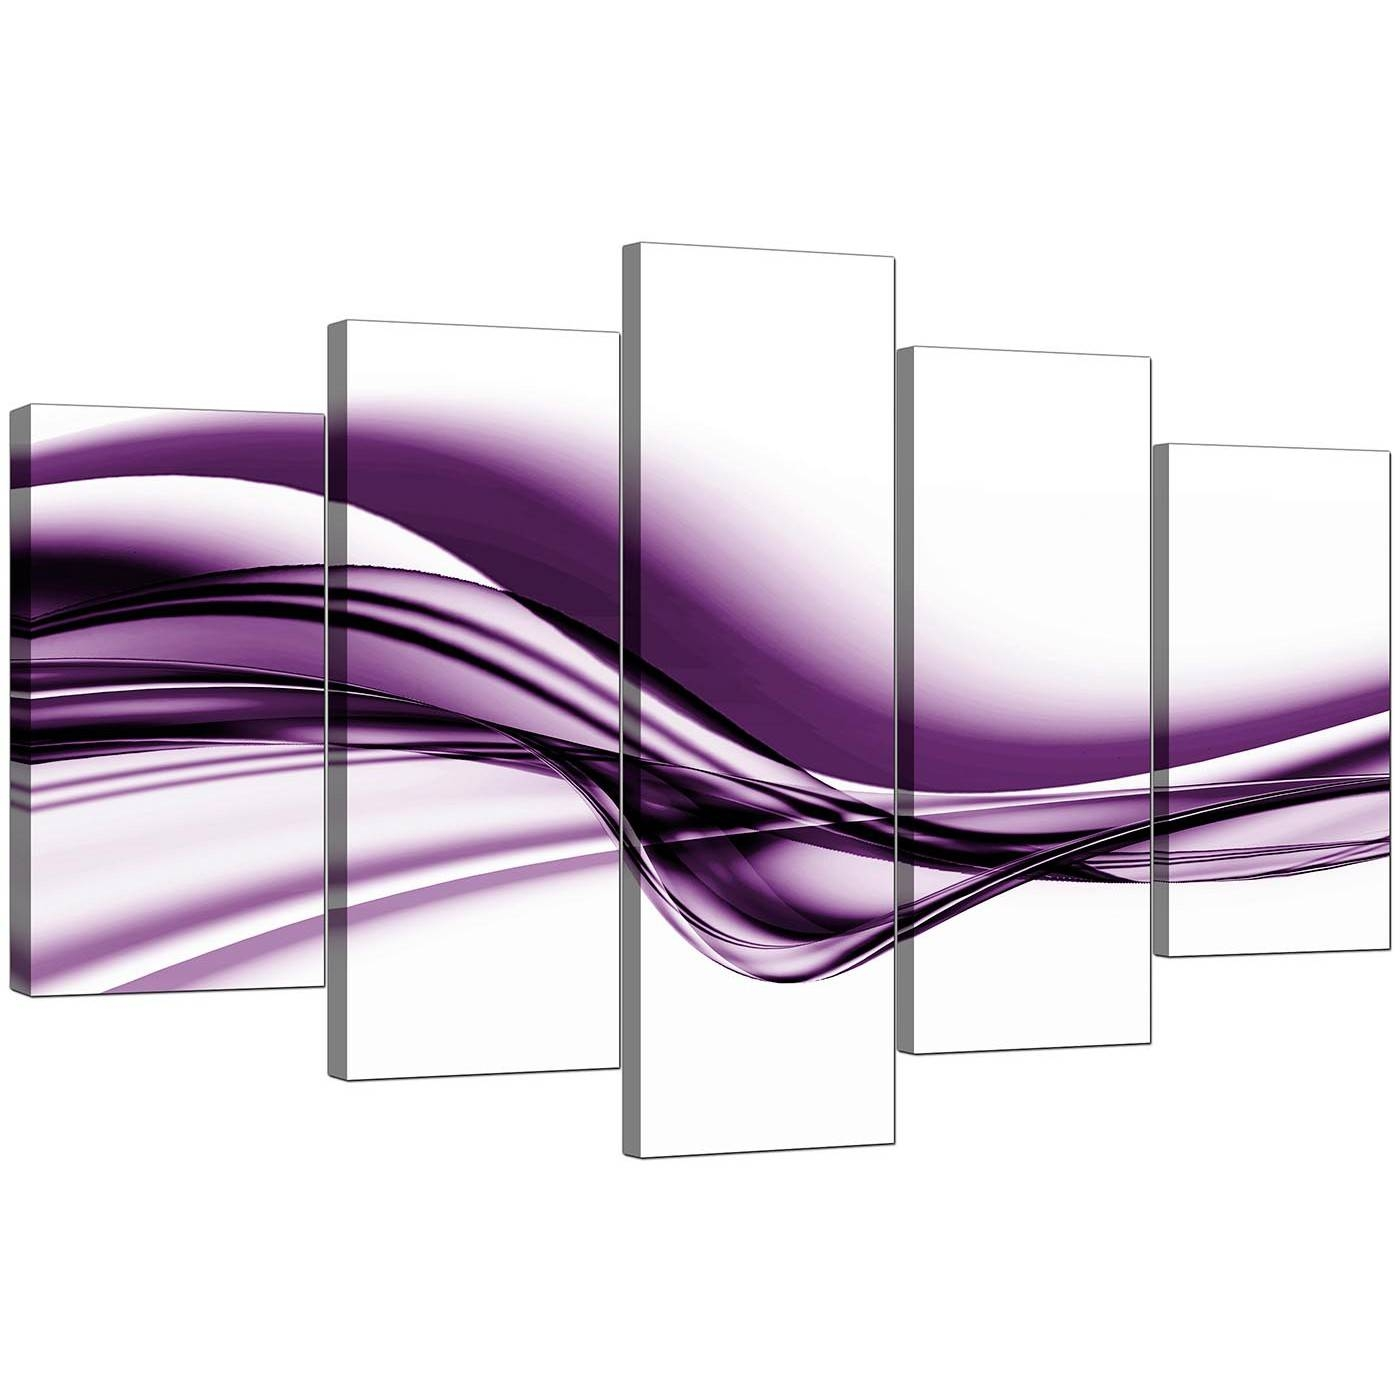 Extra Large Purple Abstract Canvas Prints – 5 Piece Intended For Most Up To Date Purple Abstract Wall Art (Gallery 2 of 20)